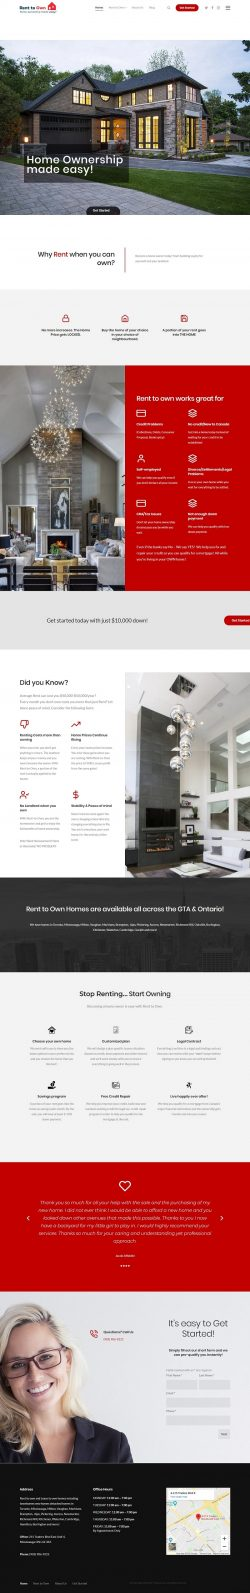 Rent to own condos